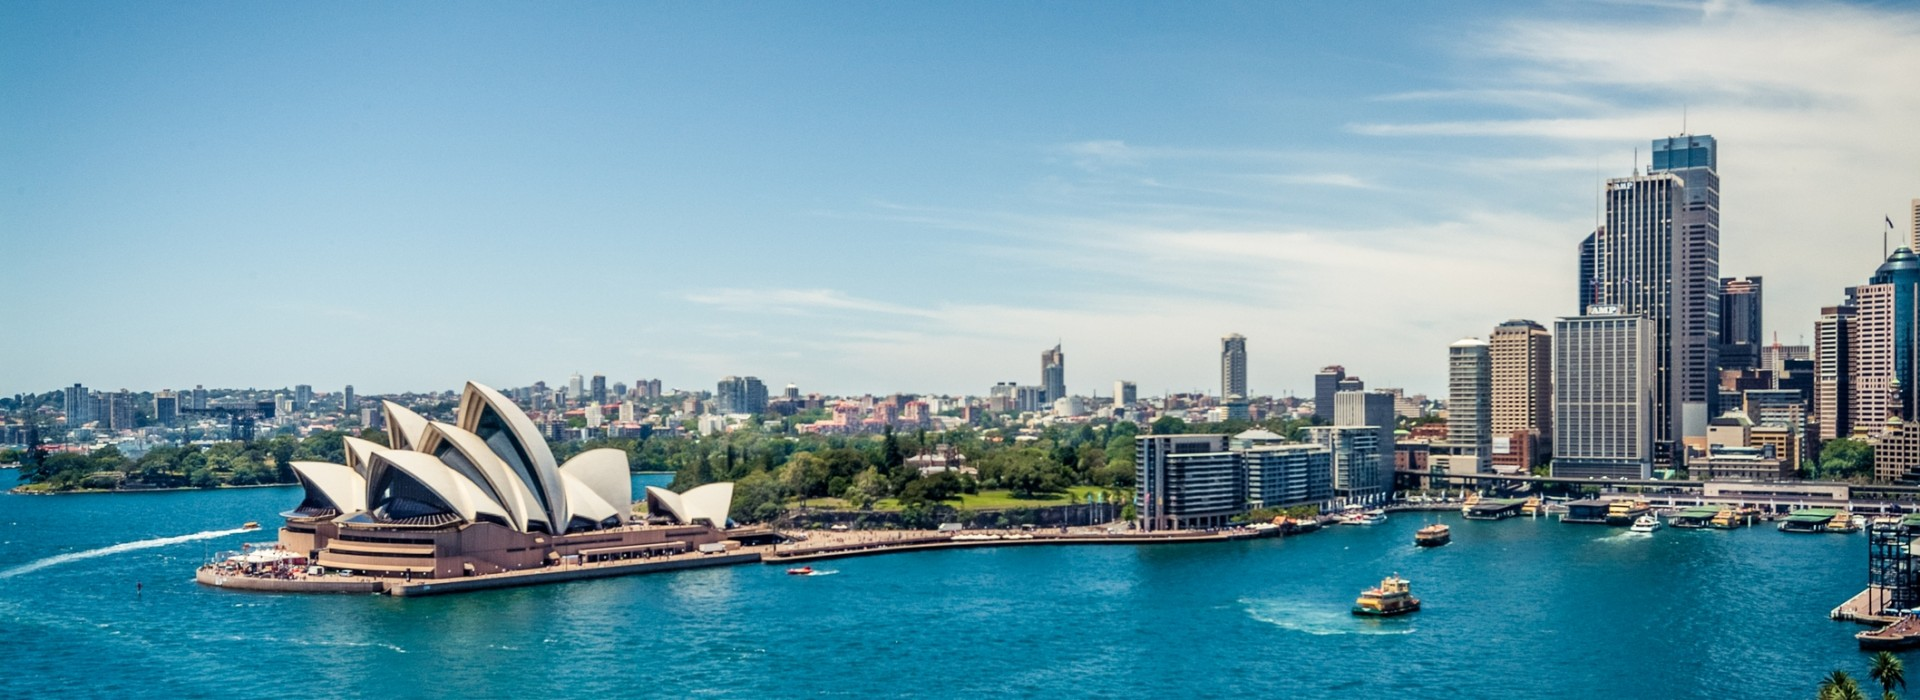 Travelling Sydney - Tours and Holiday Packages in Sydney